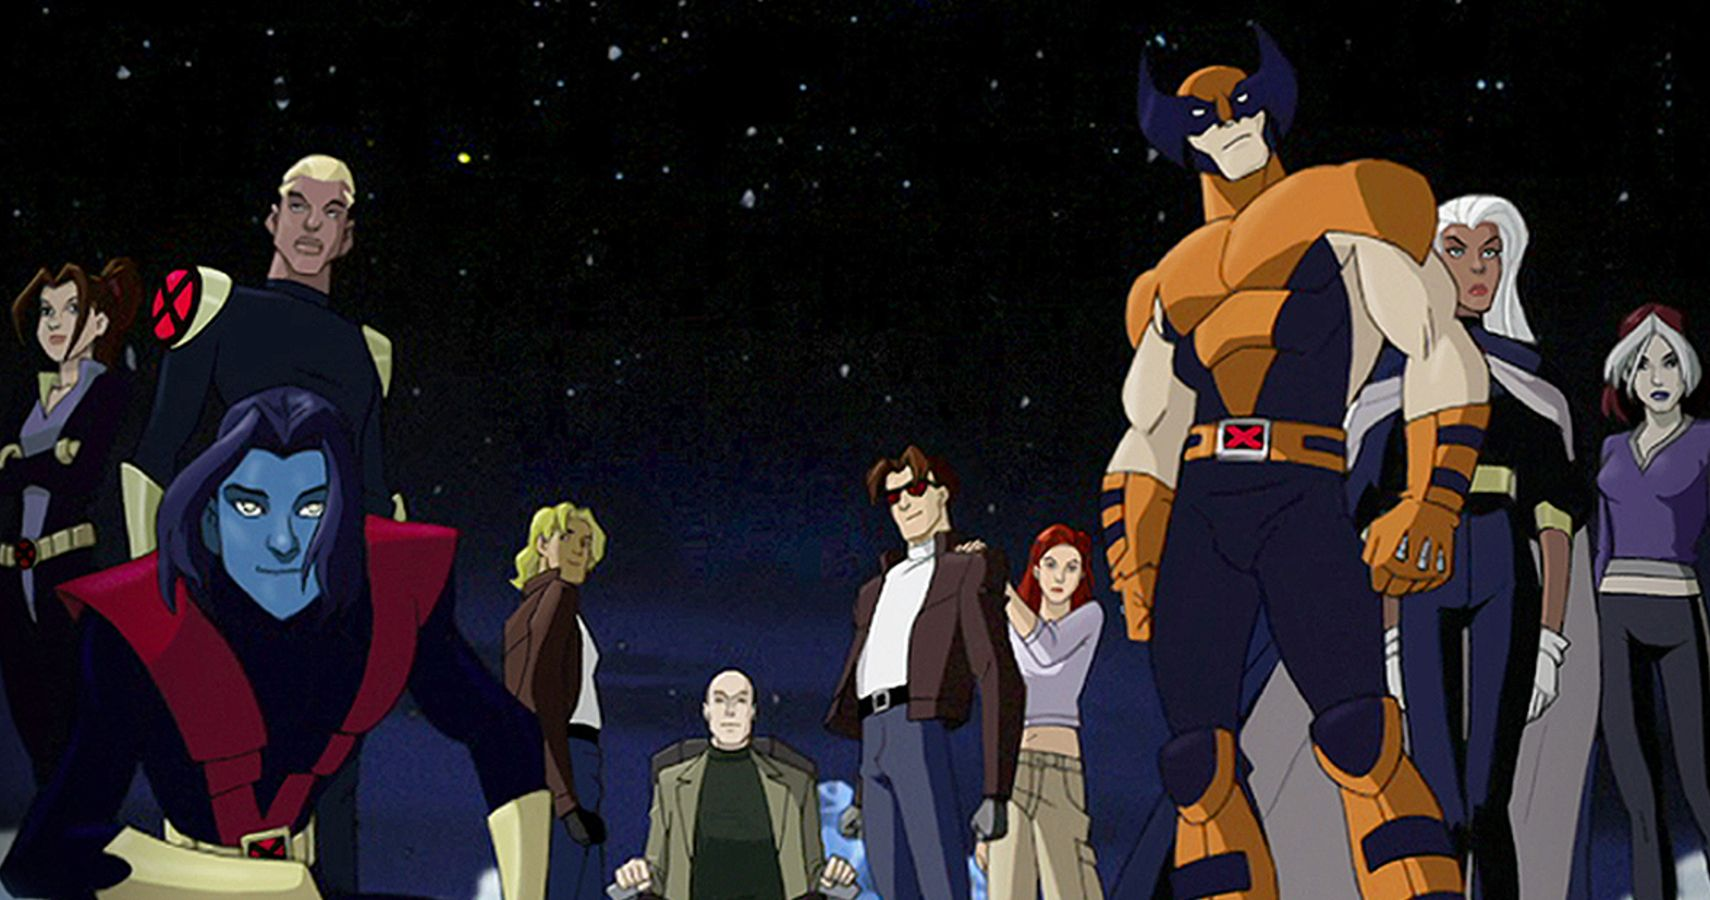 X-Men Evolution - In this series, a group of youngsters realizes their supernatural powers therefore making a team of young mutants fighting for the world peace. Professor Xavier trains these mutants to use their power for good. It has an ironic plot where the mutants were fighting for saving the world but the people got scared of them.